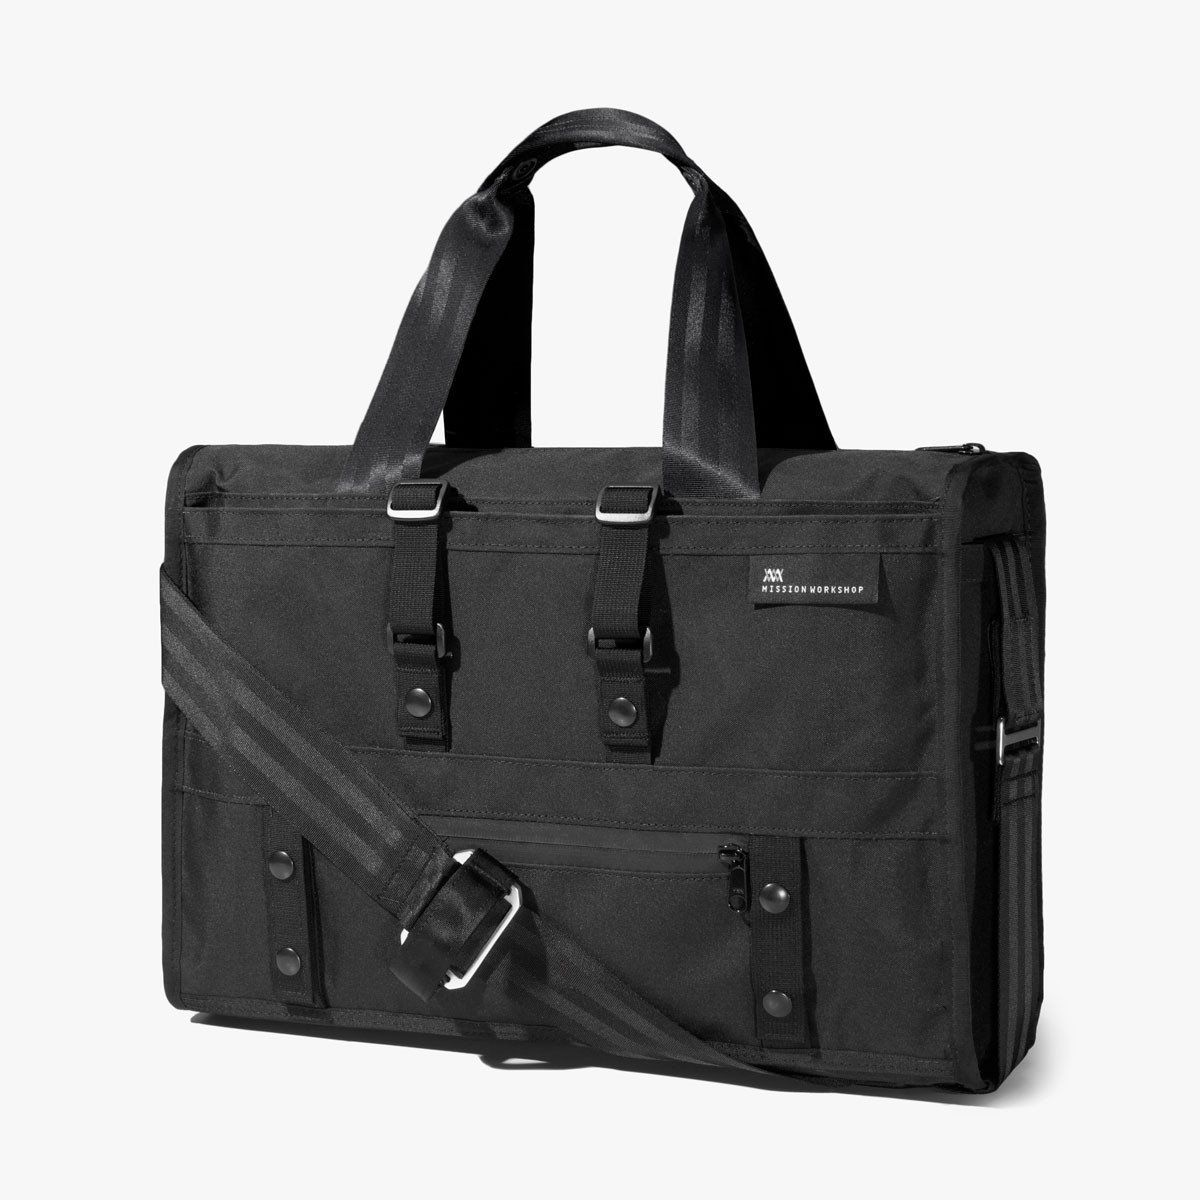 The Transit Laptop Products Shoulder Bag Bags